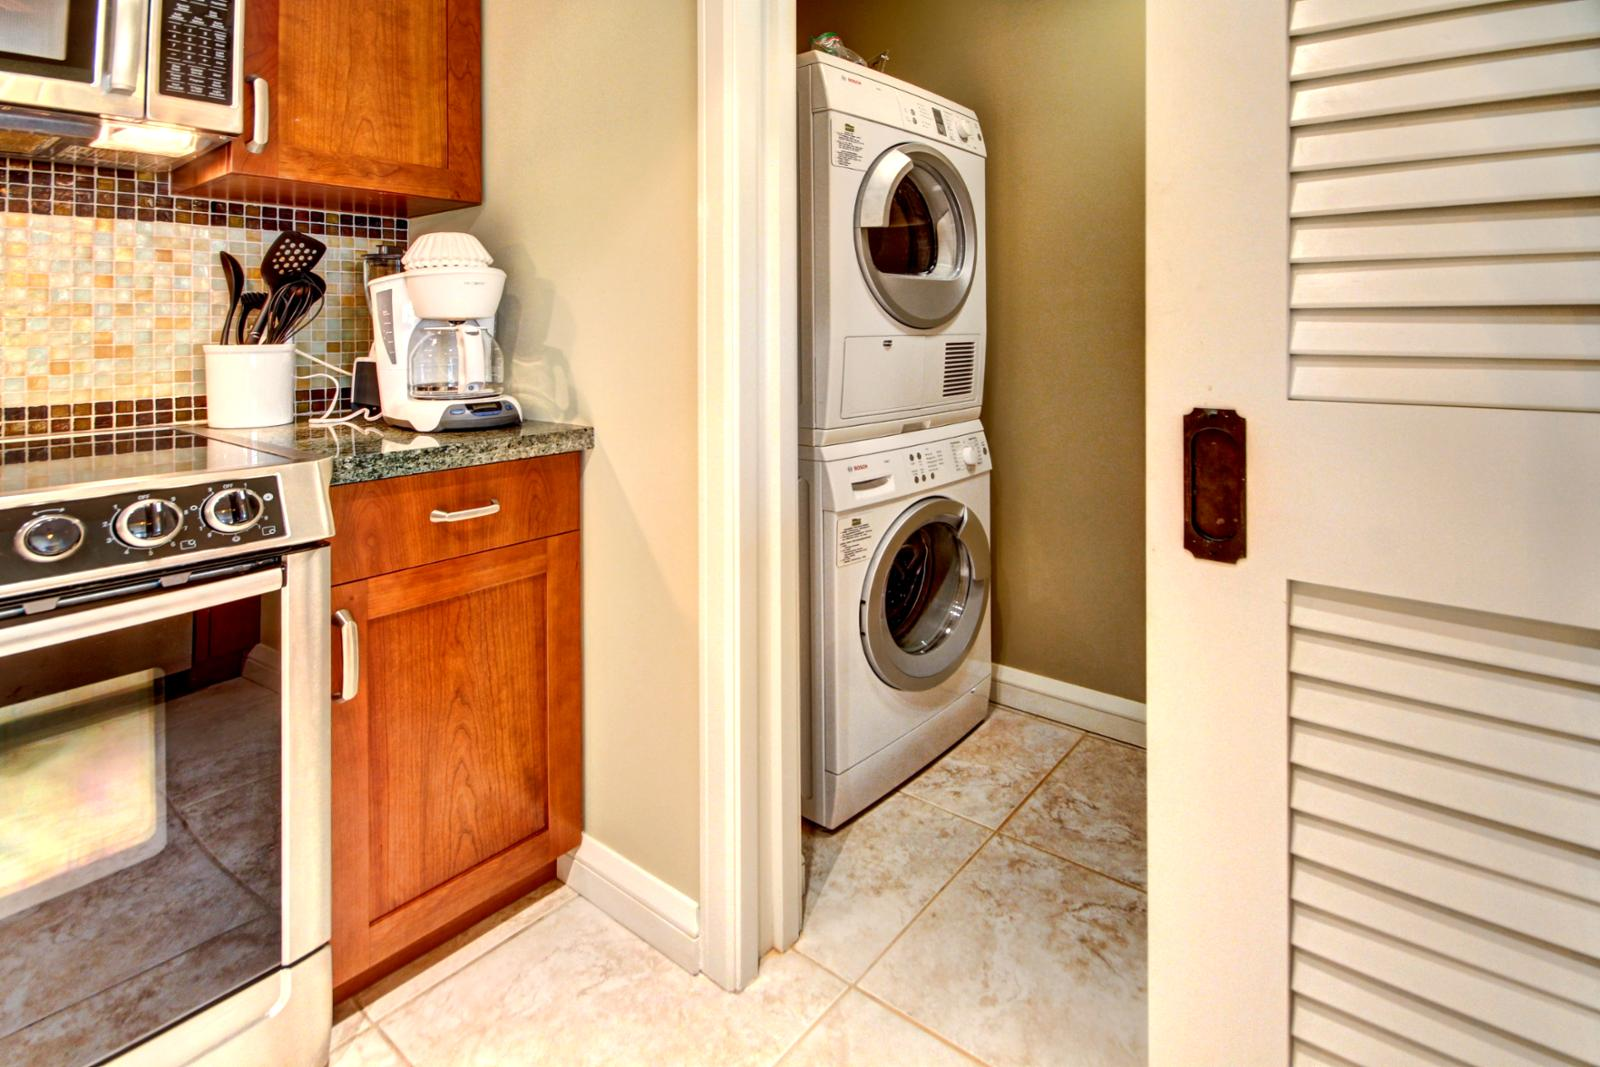 Washer and Dryer in the unit for your use. Keep in mind dryers at Honua Kai Resort are ventless.